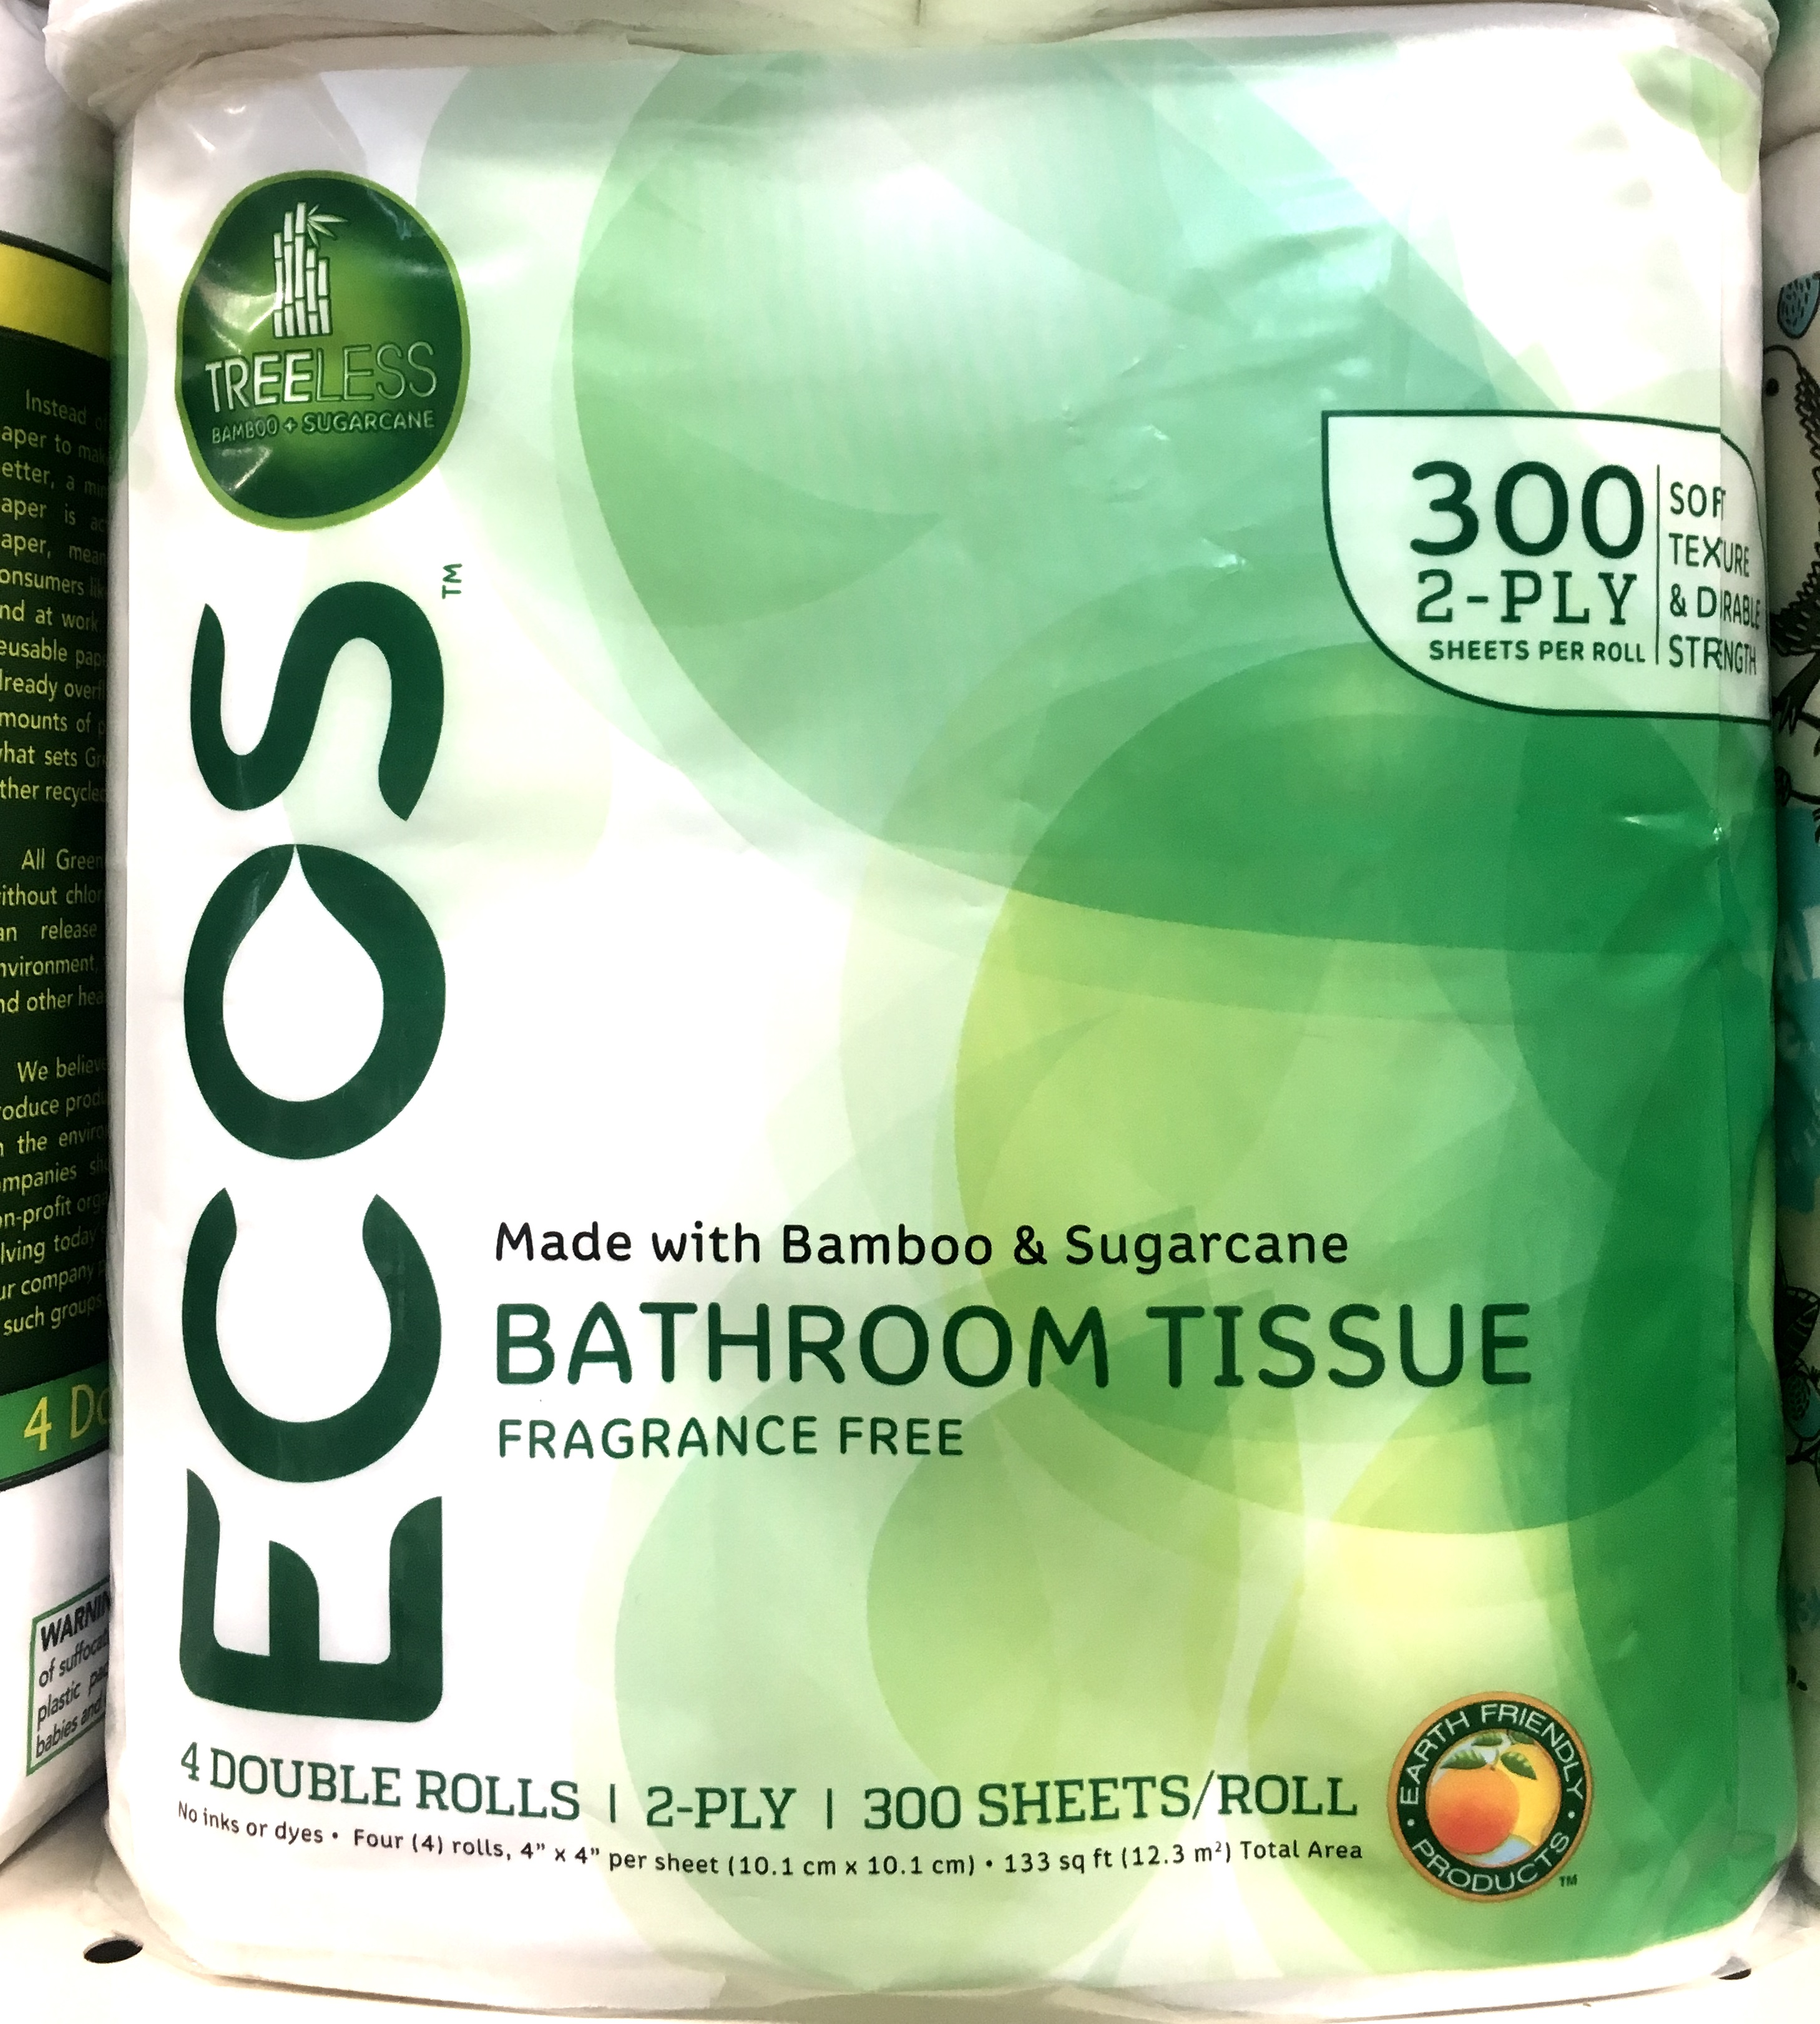 Bamboo-derived toilet paper